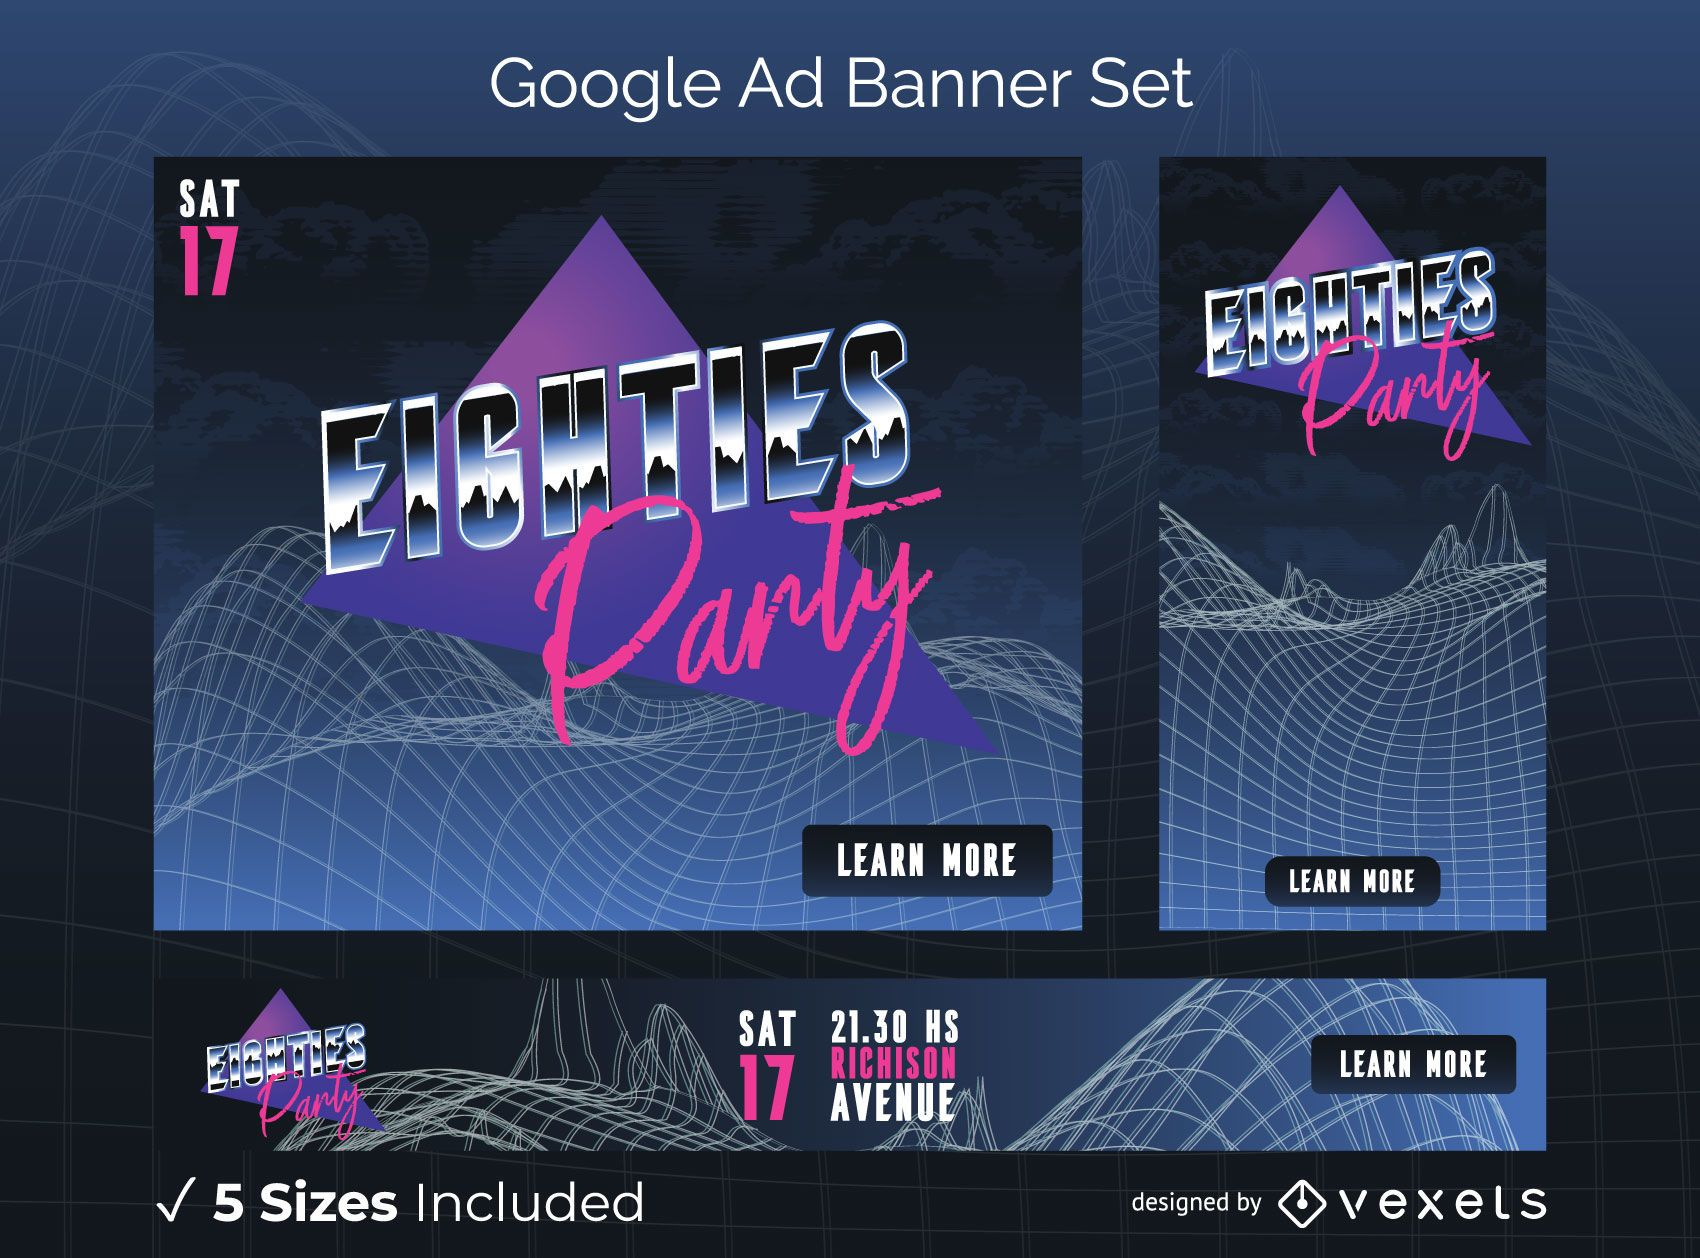 80s Party Google Ads Banner Pack